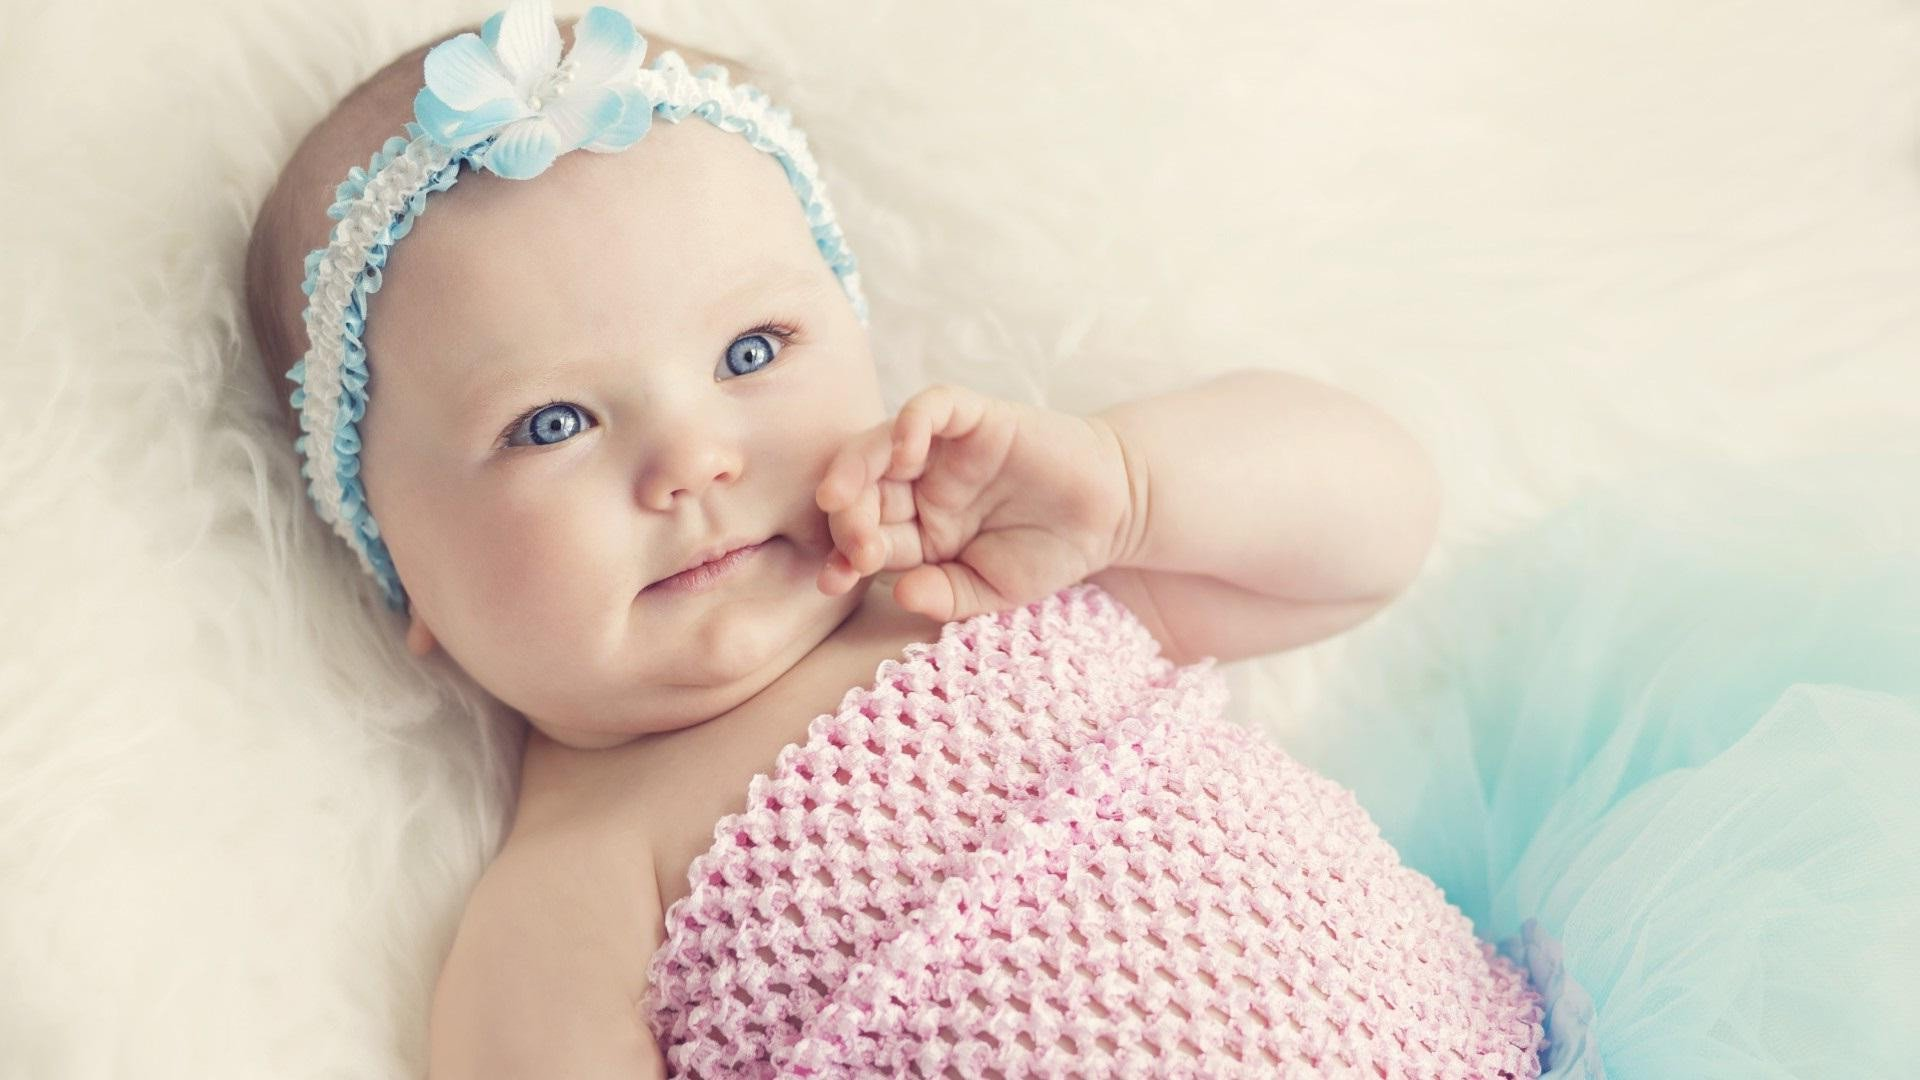 Infant Jesus Hd Wallpapers Cute Baby With Blue Eyes Hd Girls 4k Wallpapers Images